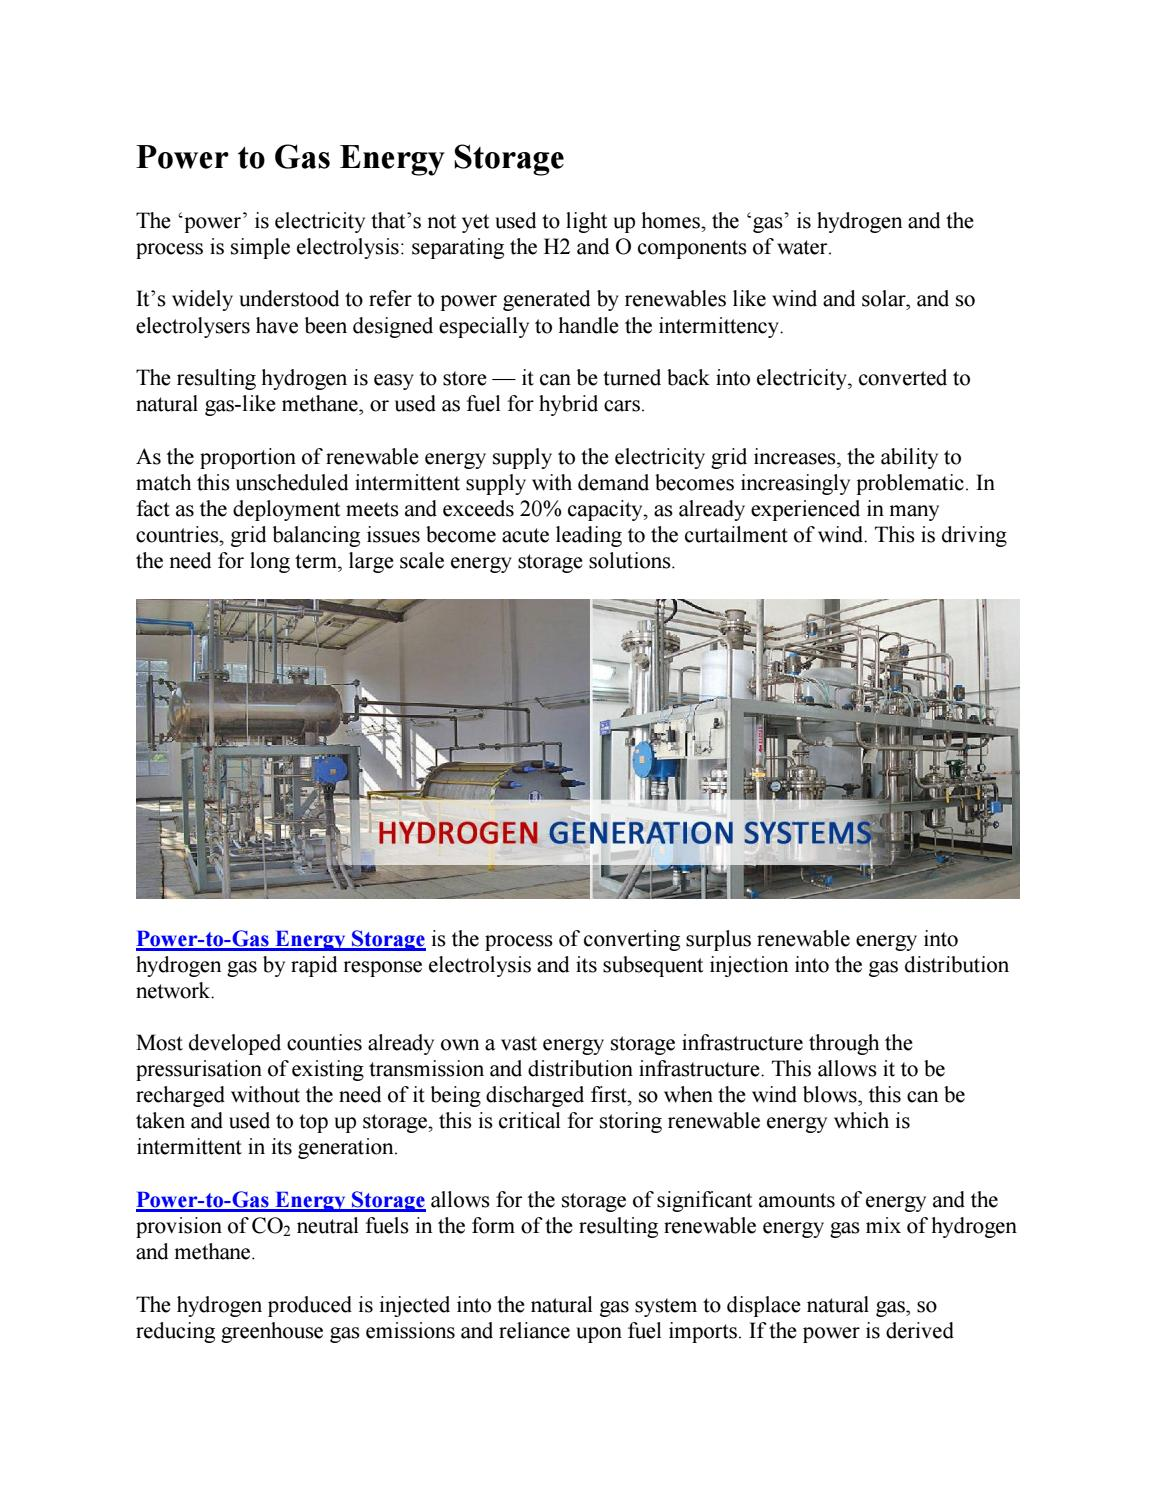 Power to gas energy storage by crystaltcs - issuu